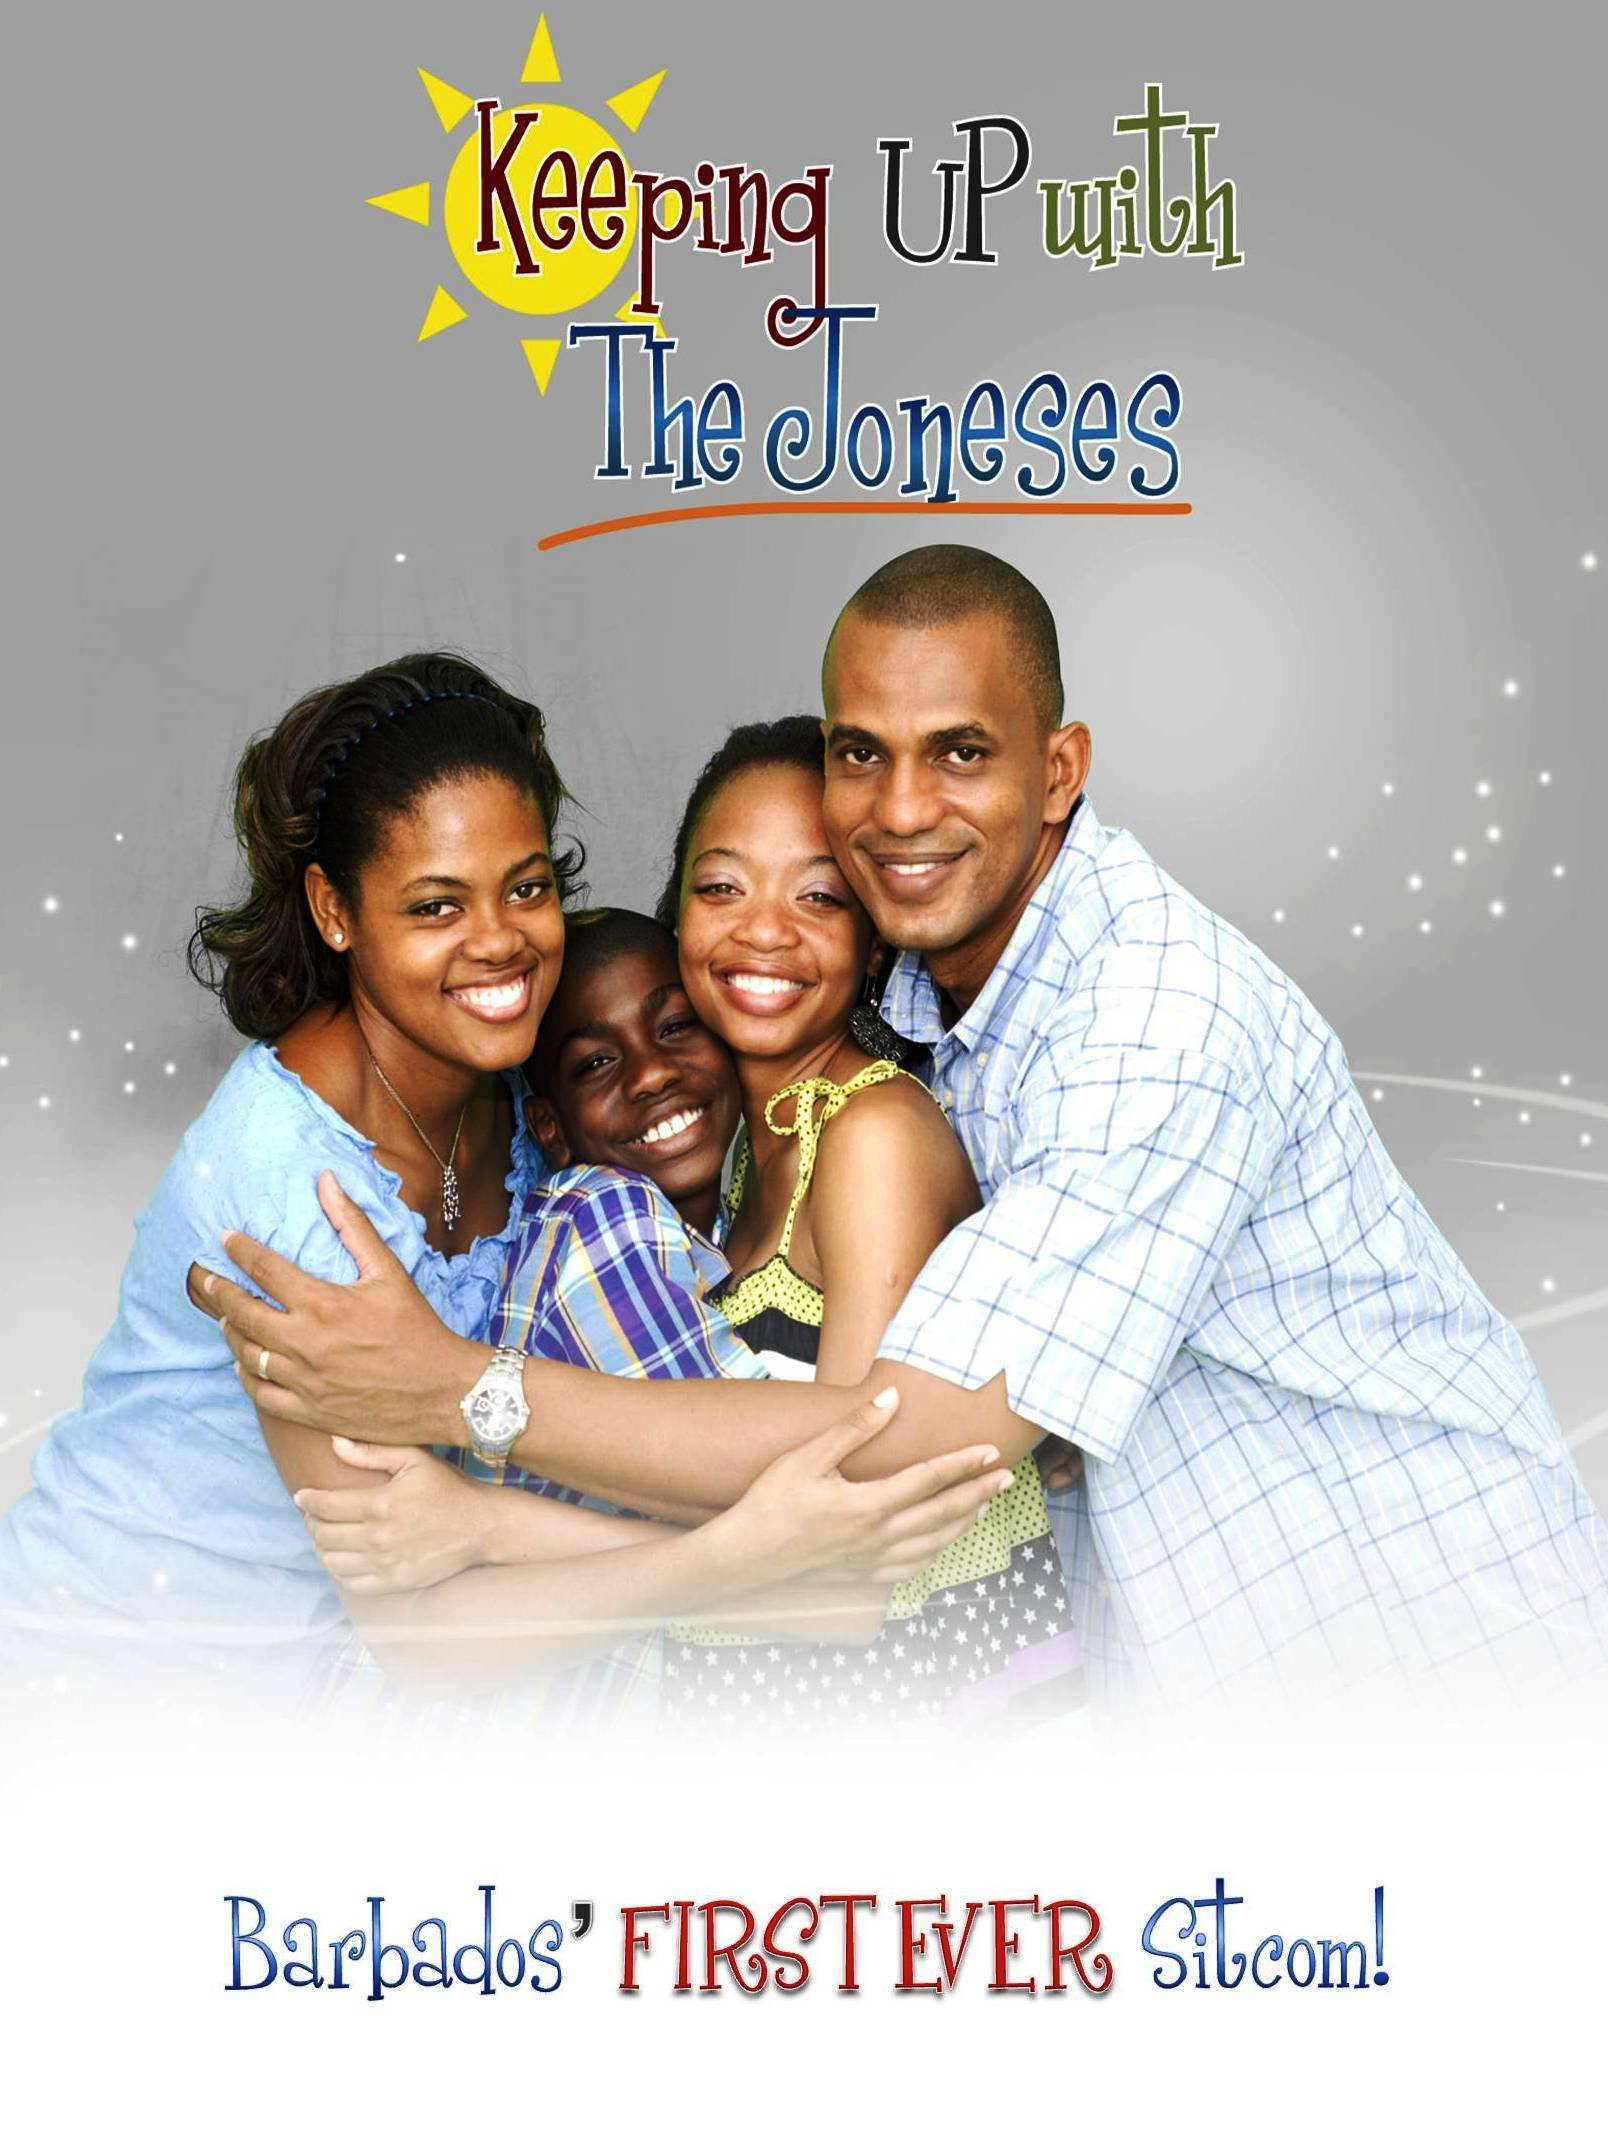 Keeping Up With The Joneses Tv Series 2011 Imdb,What Color Goes With Purple And Yellow